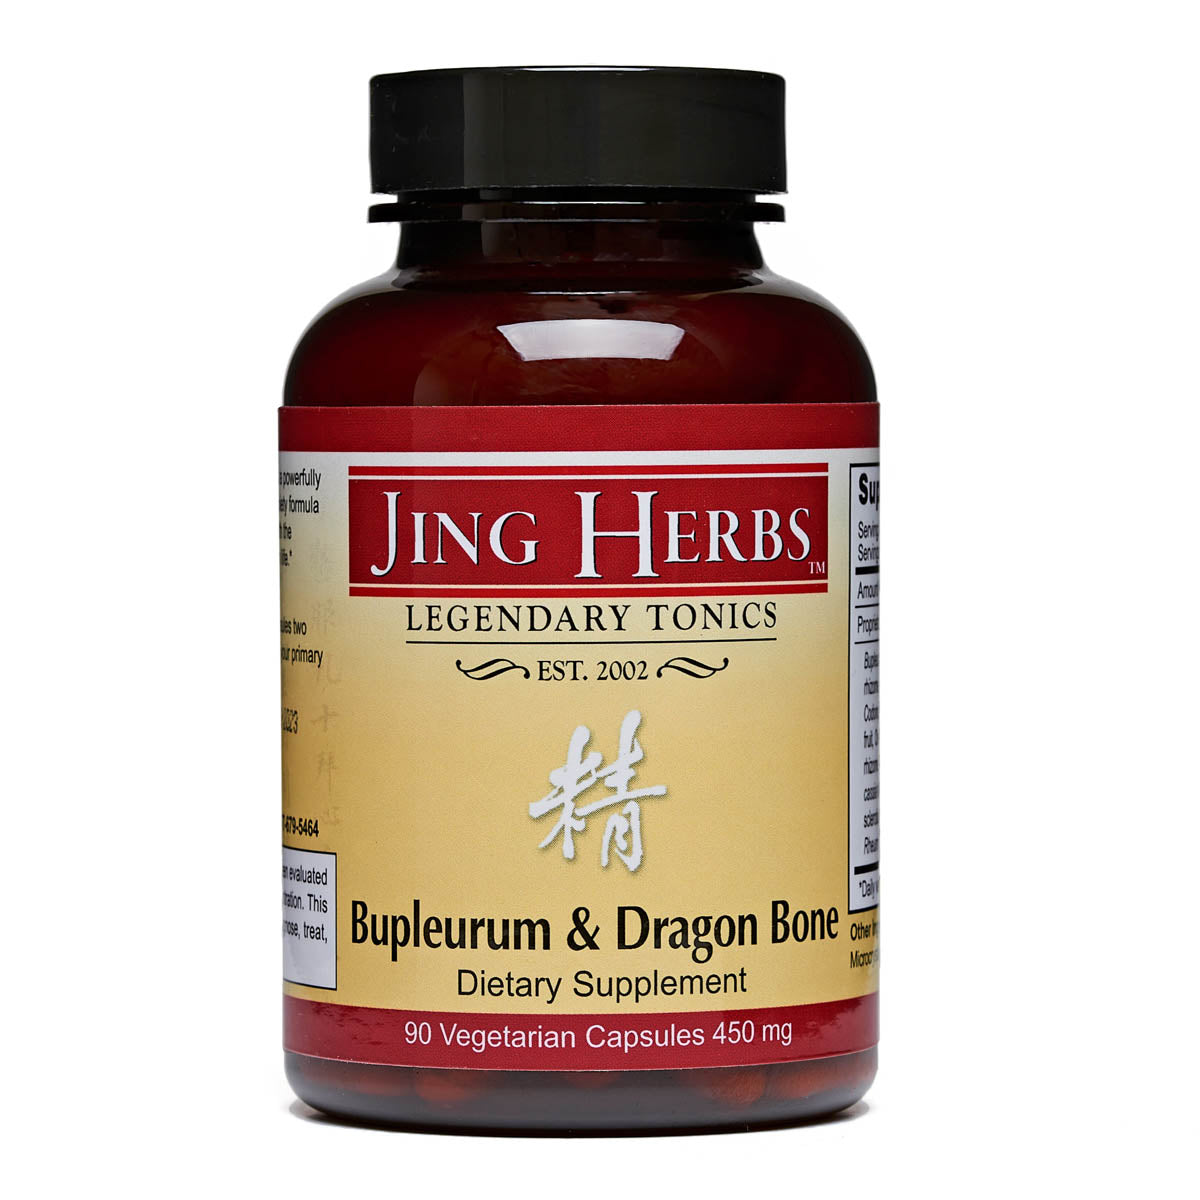 Bupleurum and Dragonbone (90 caps) - Jing Herbs